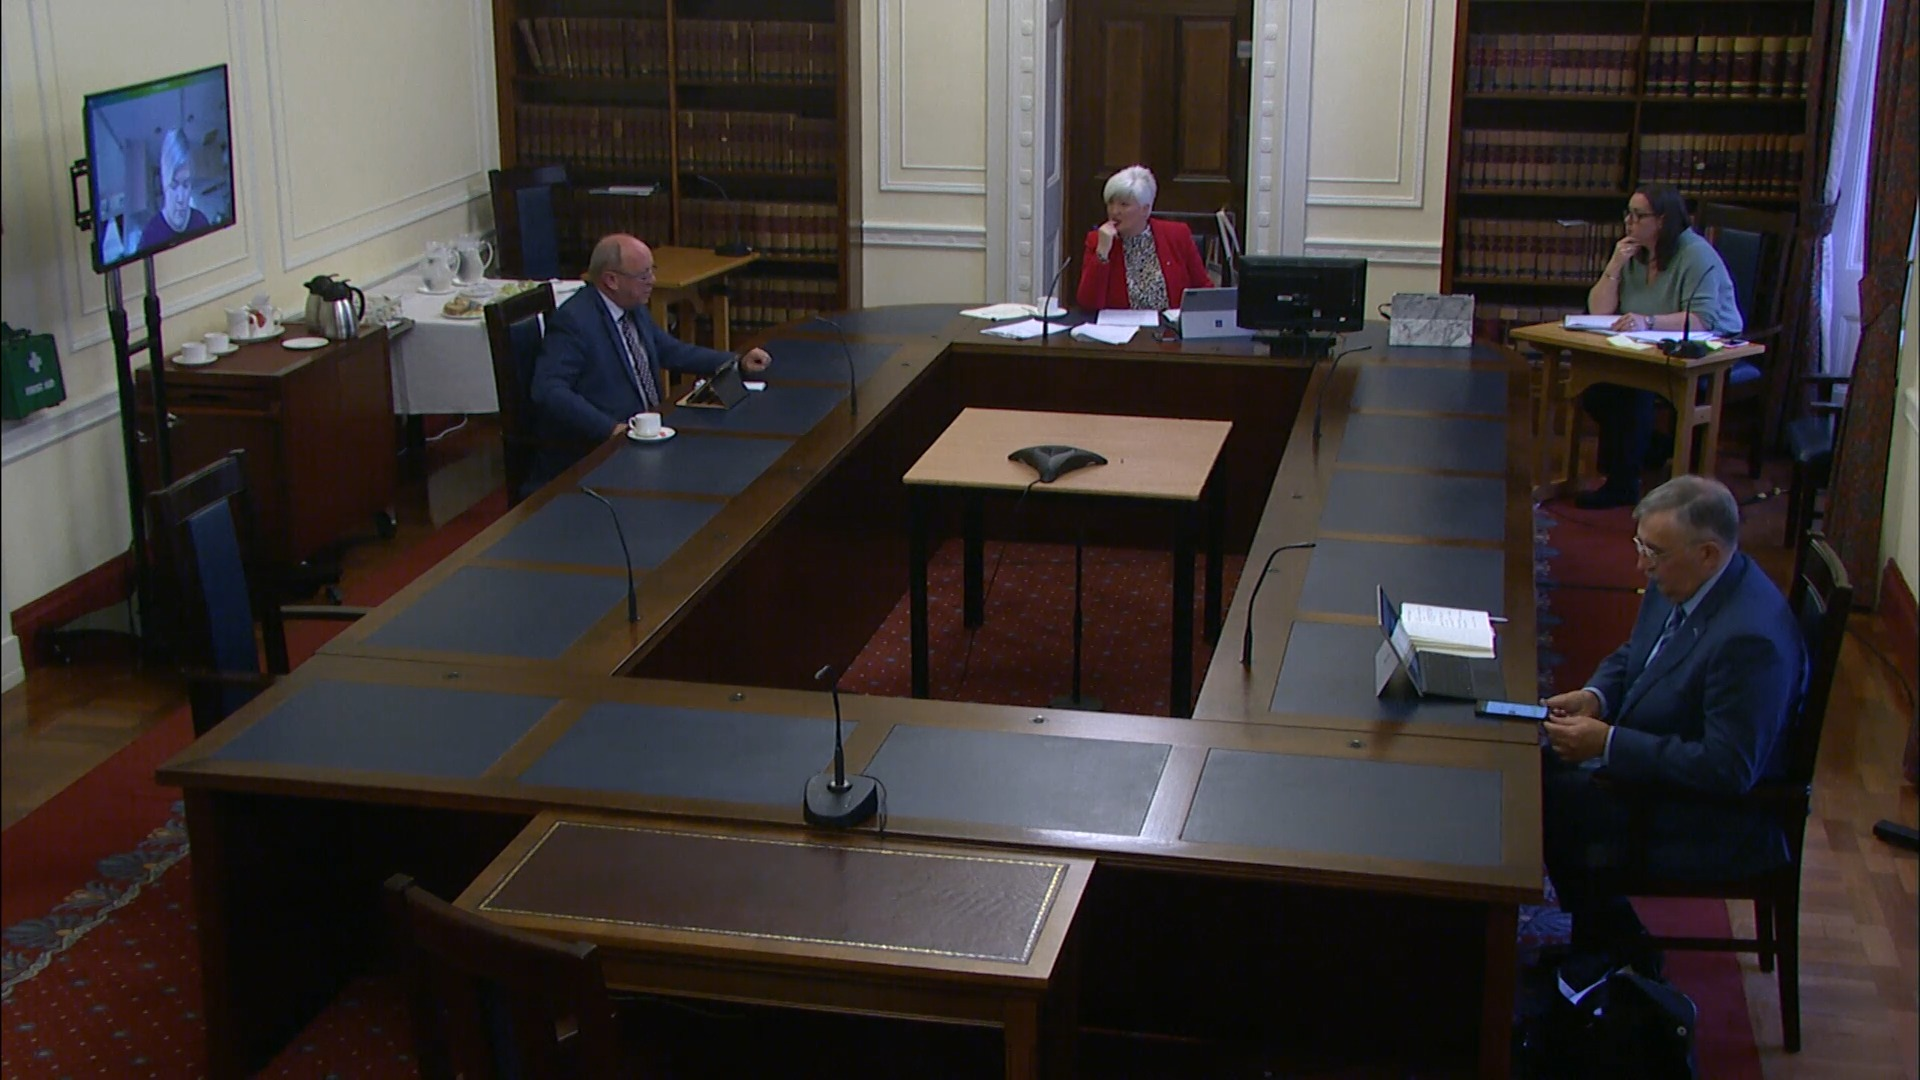 Audit Committee - Wednesday 21st October 2020